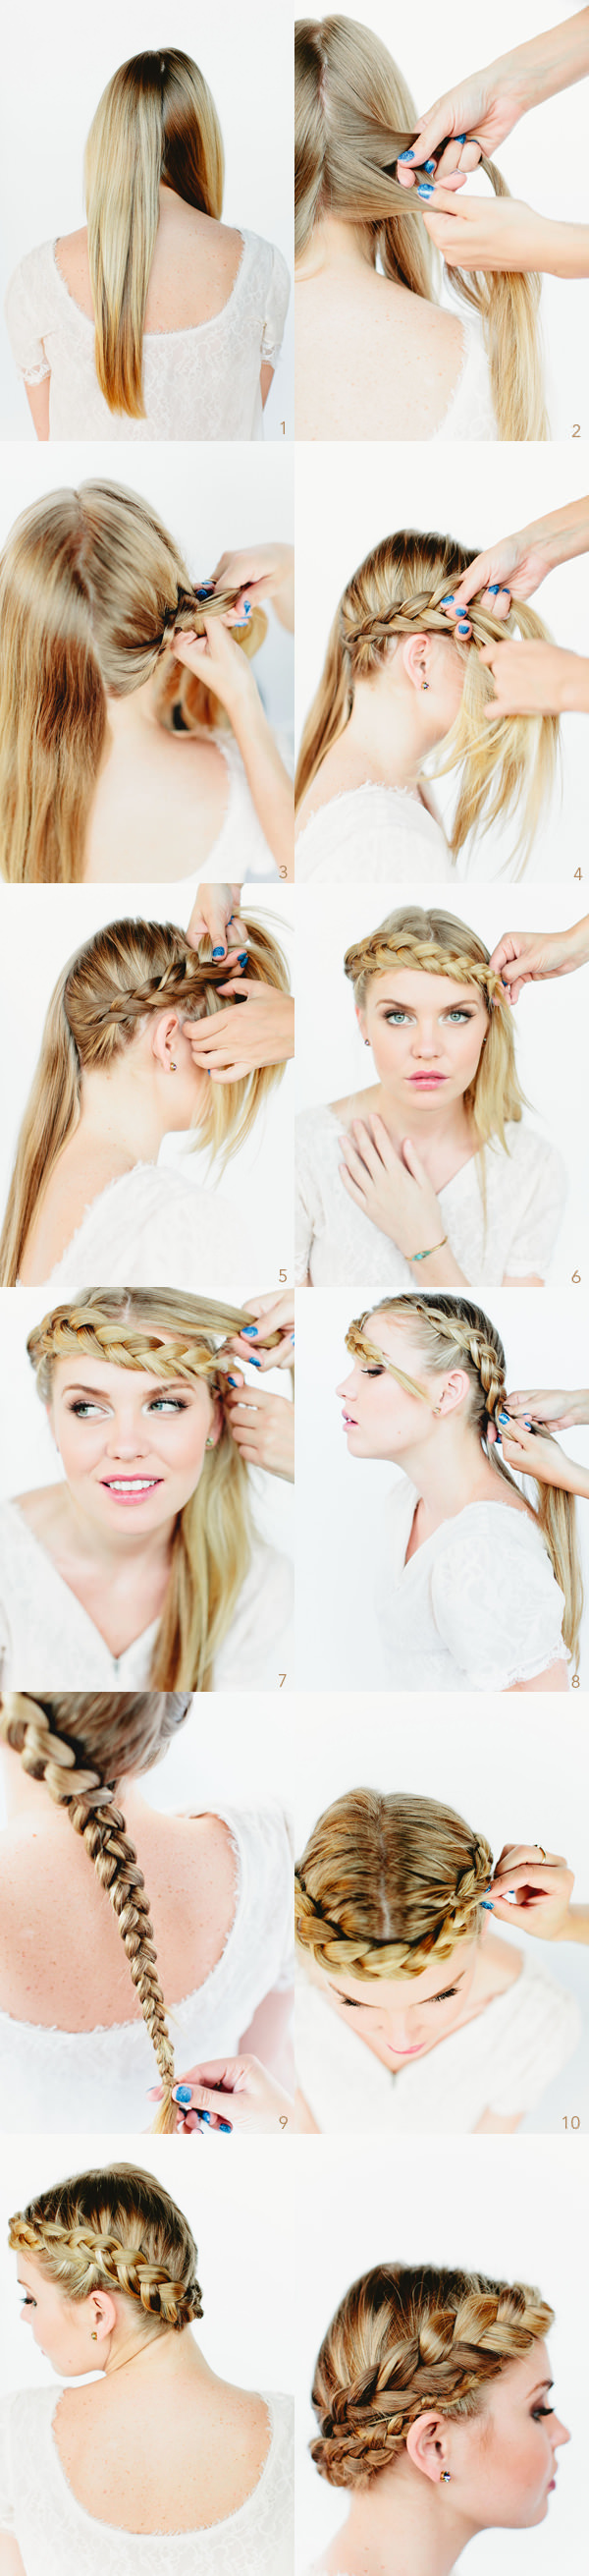 crown hairstyles braid tutorial